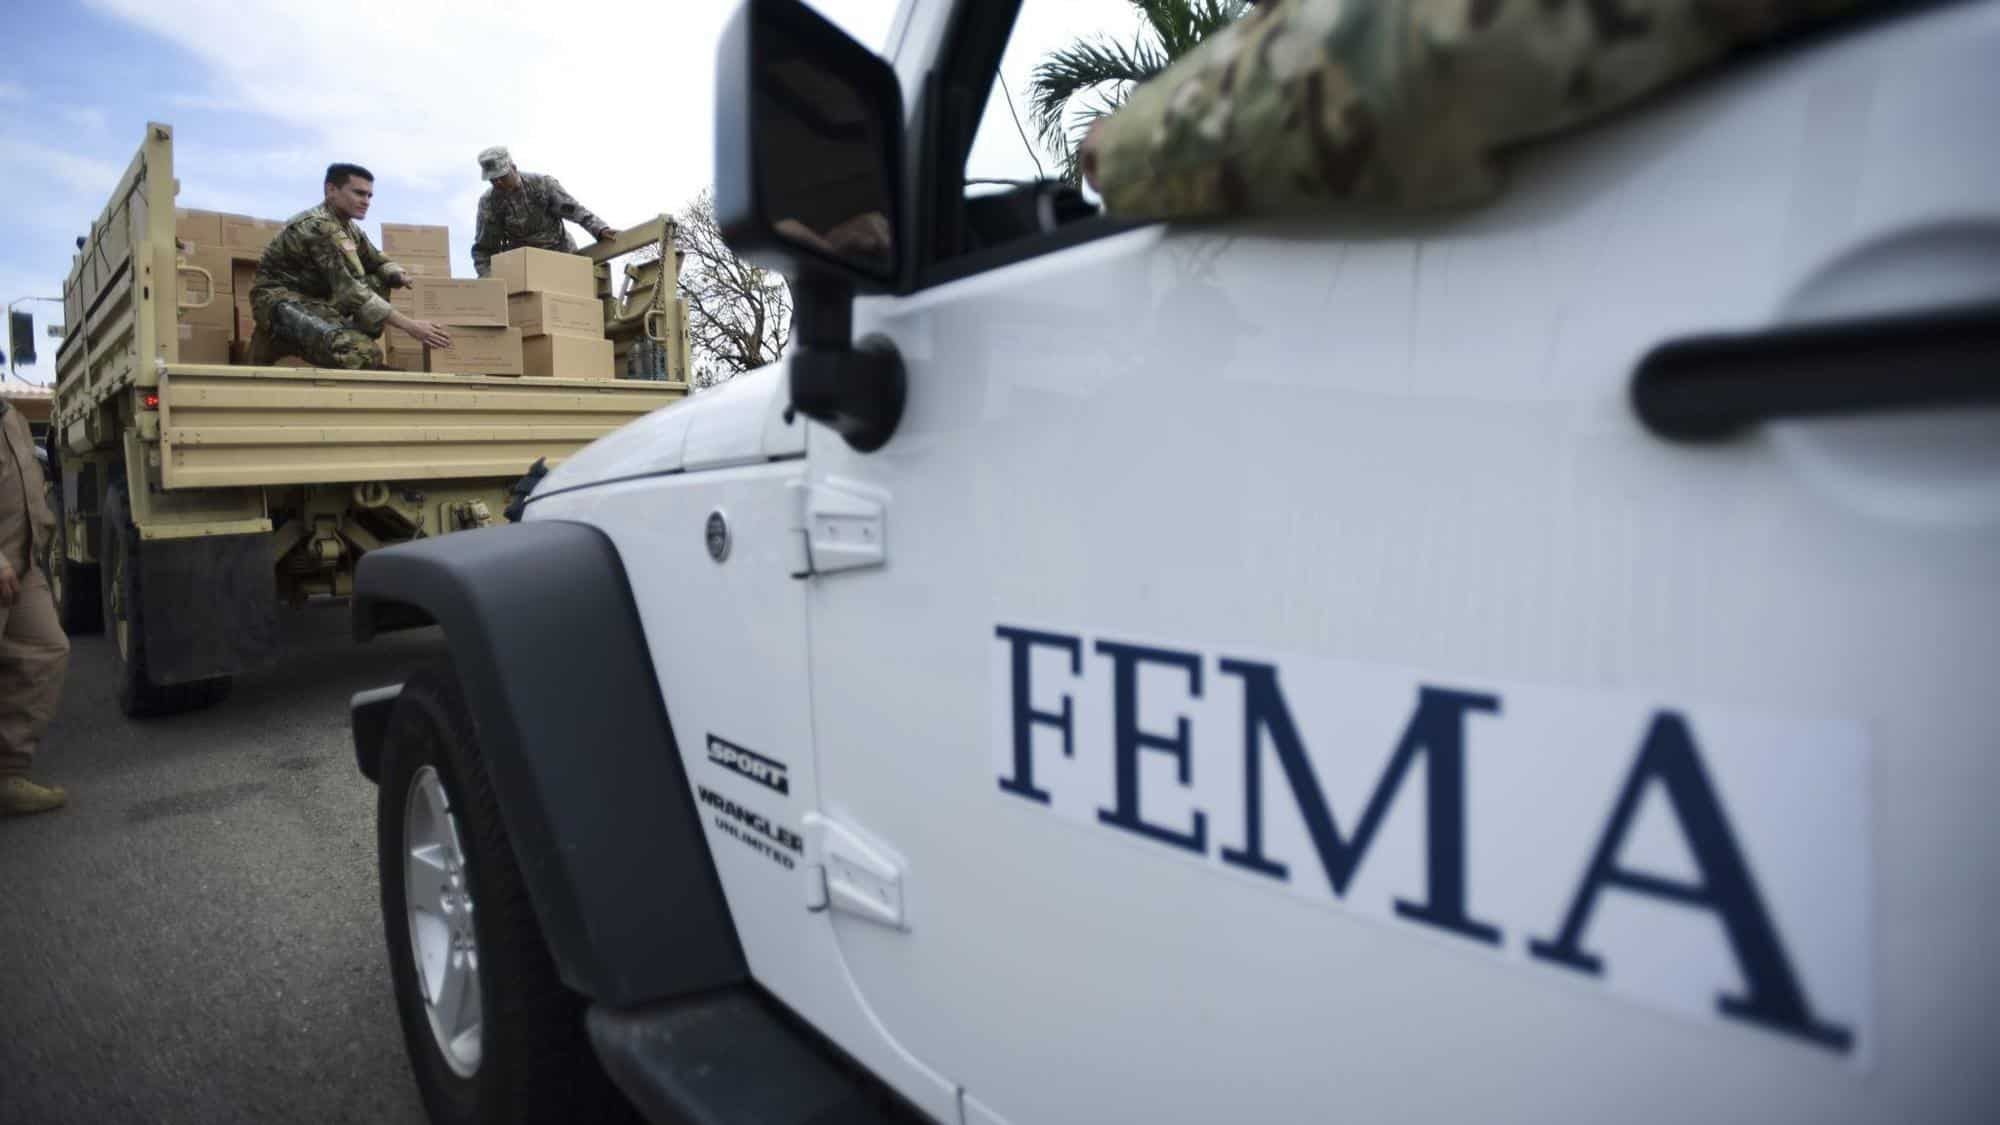 FEMA wrongly released personal data of victims, watchdog says